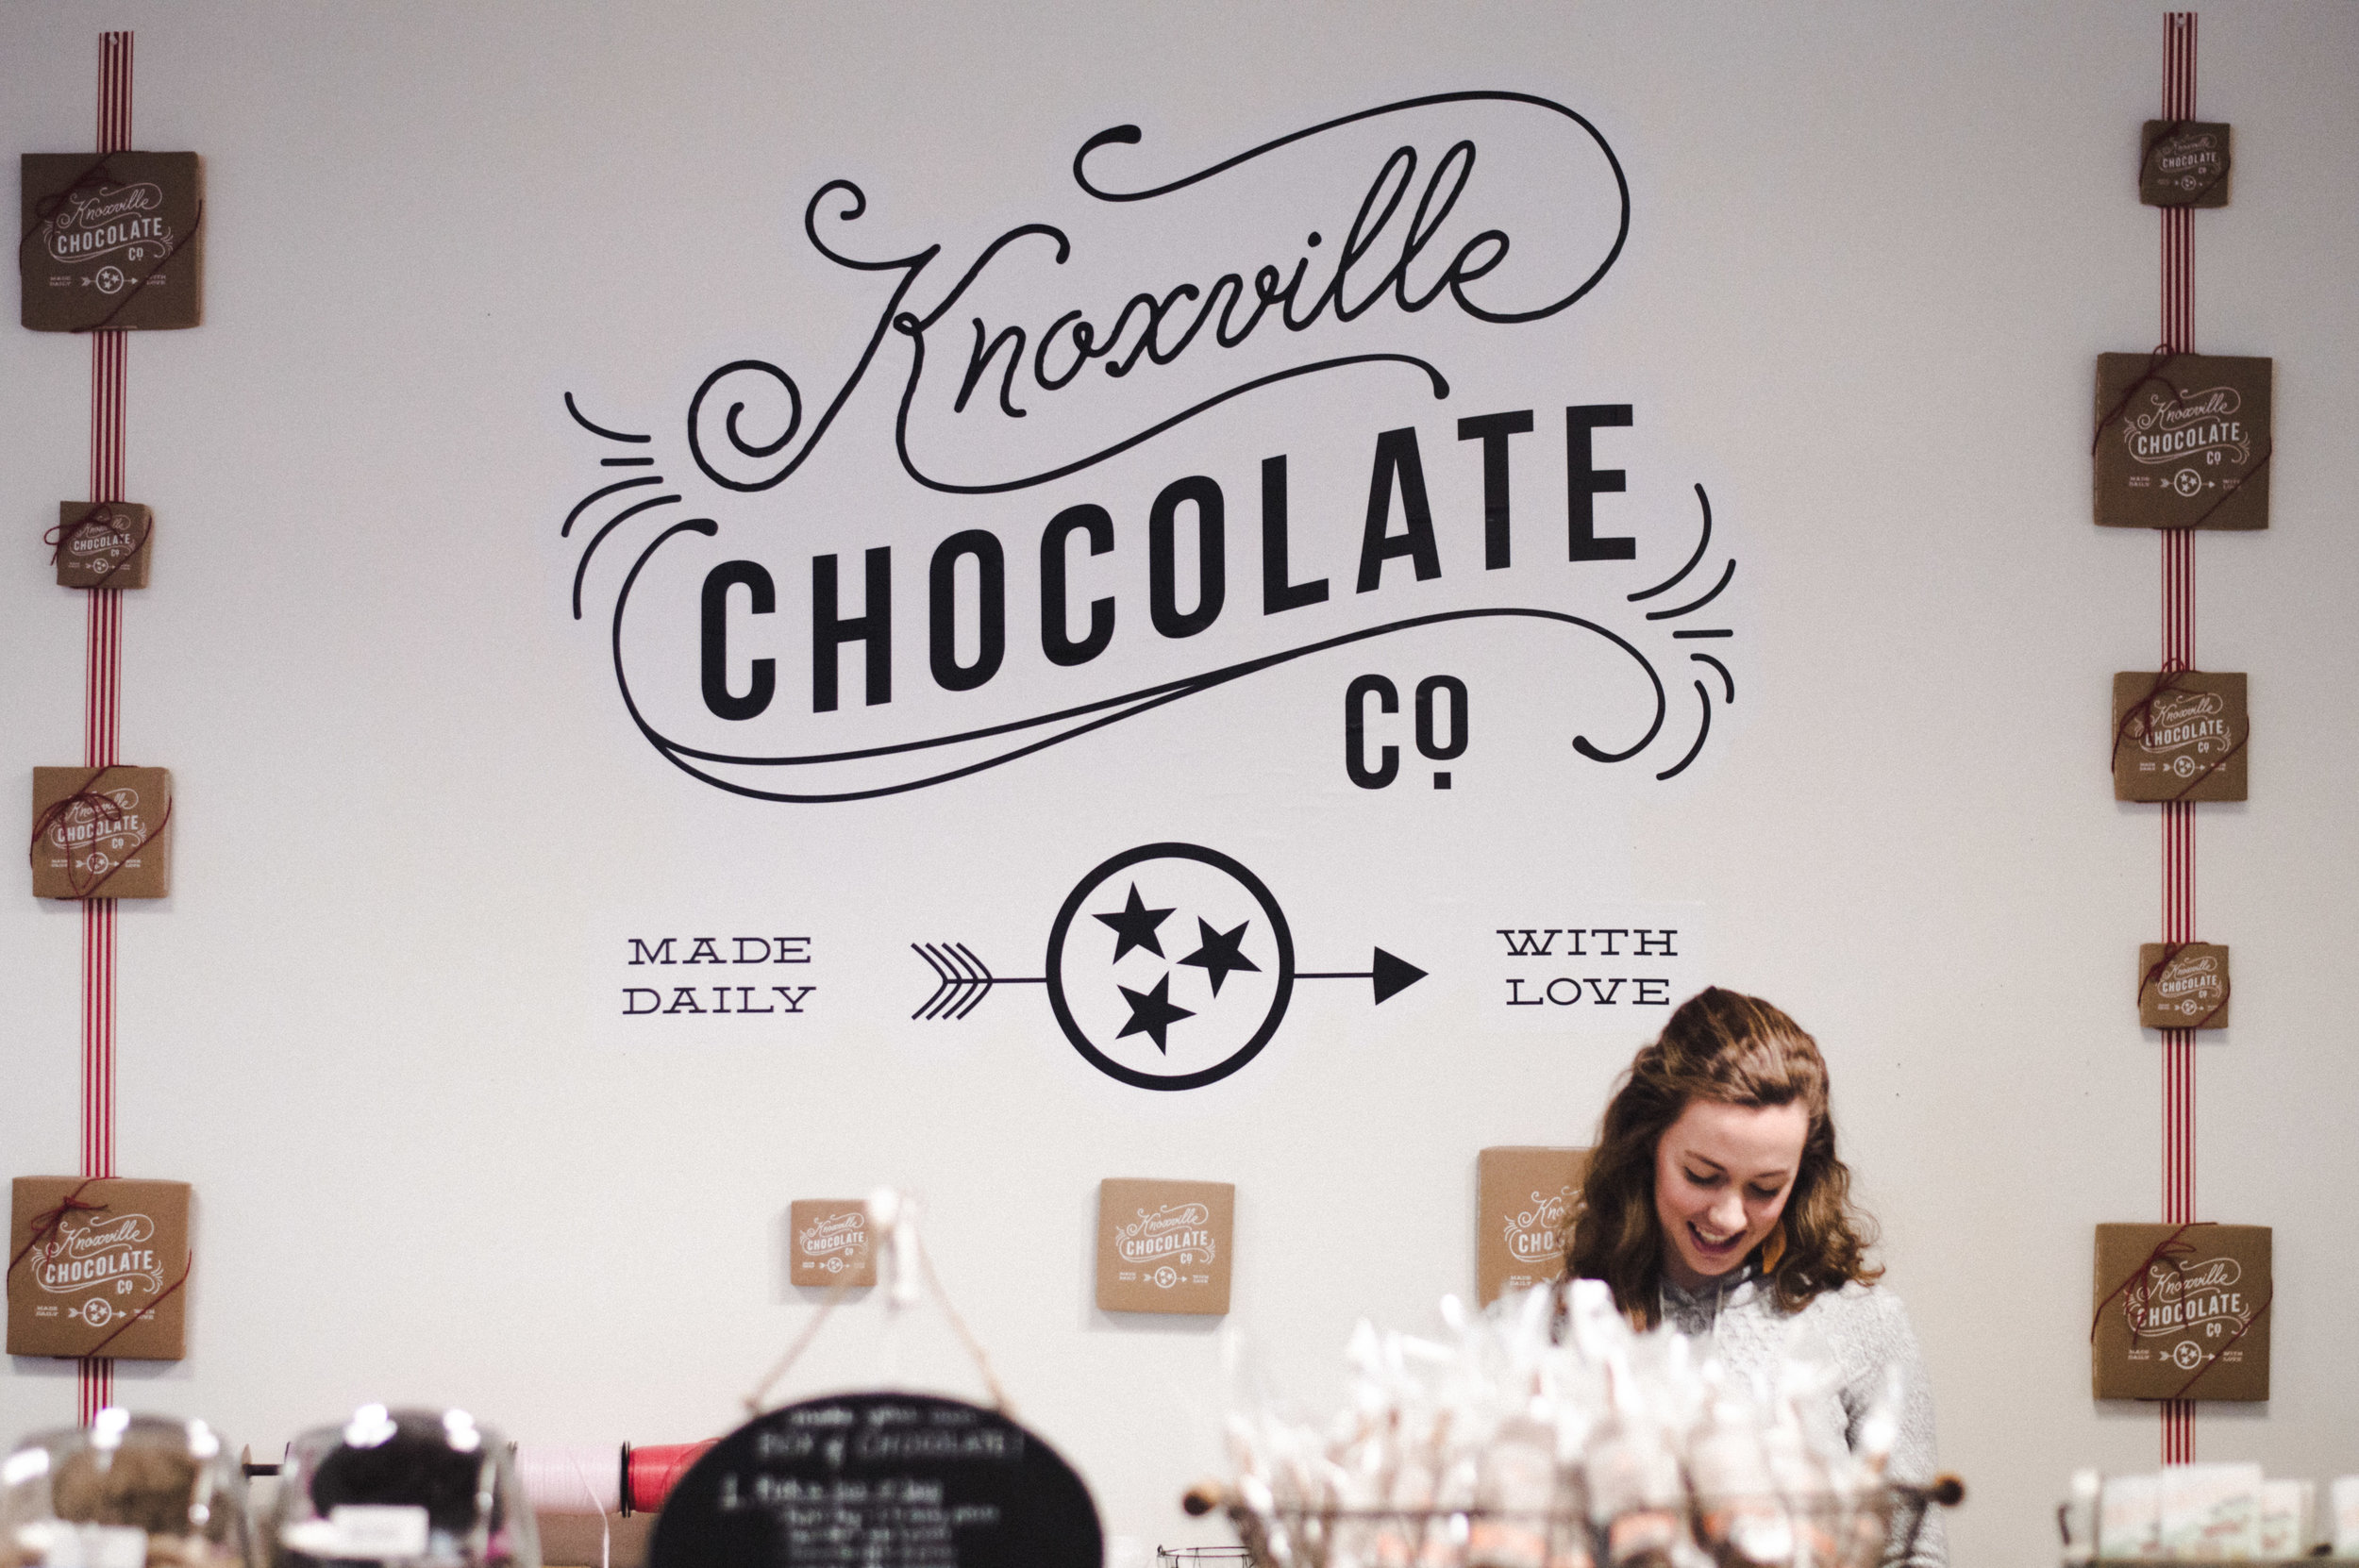 Knoxville Chocolate Co.